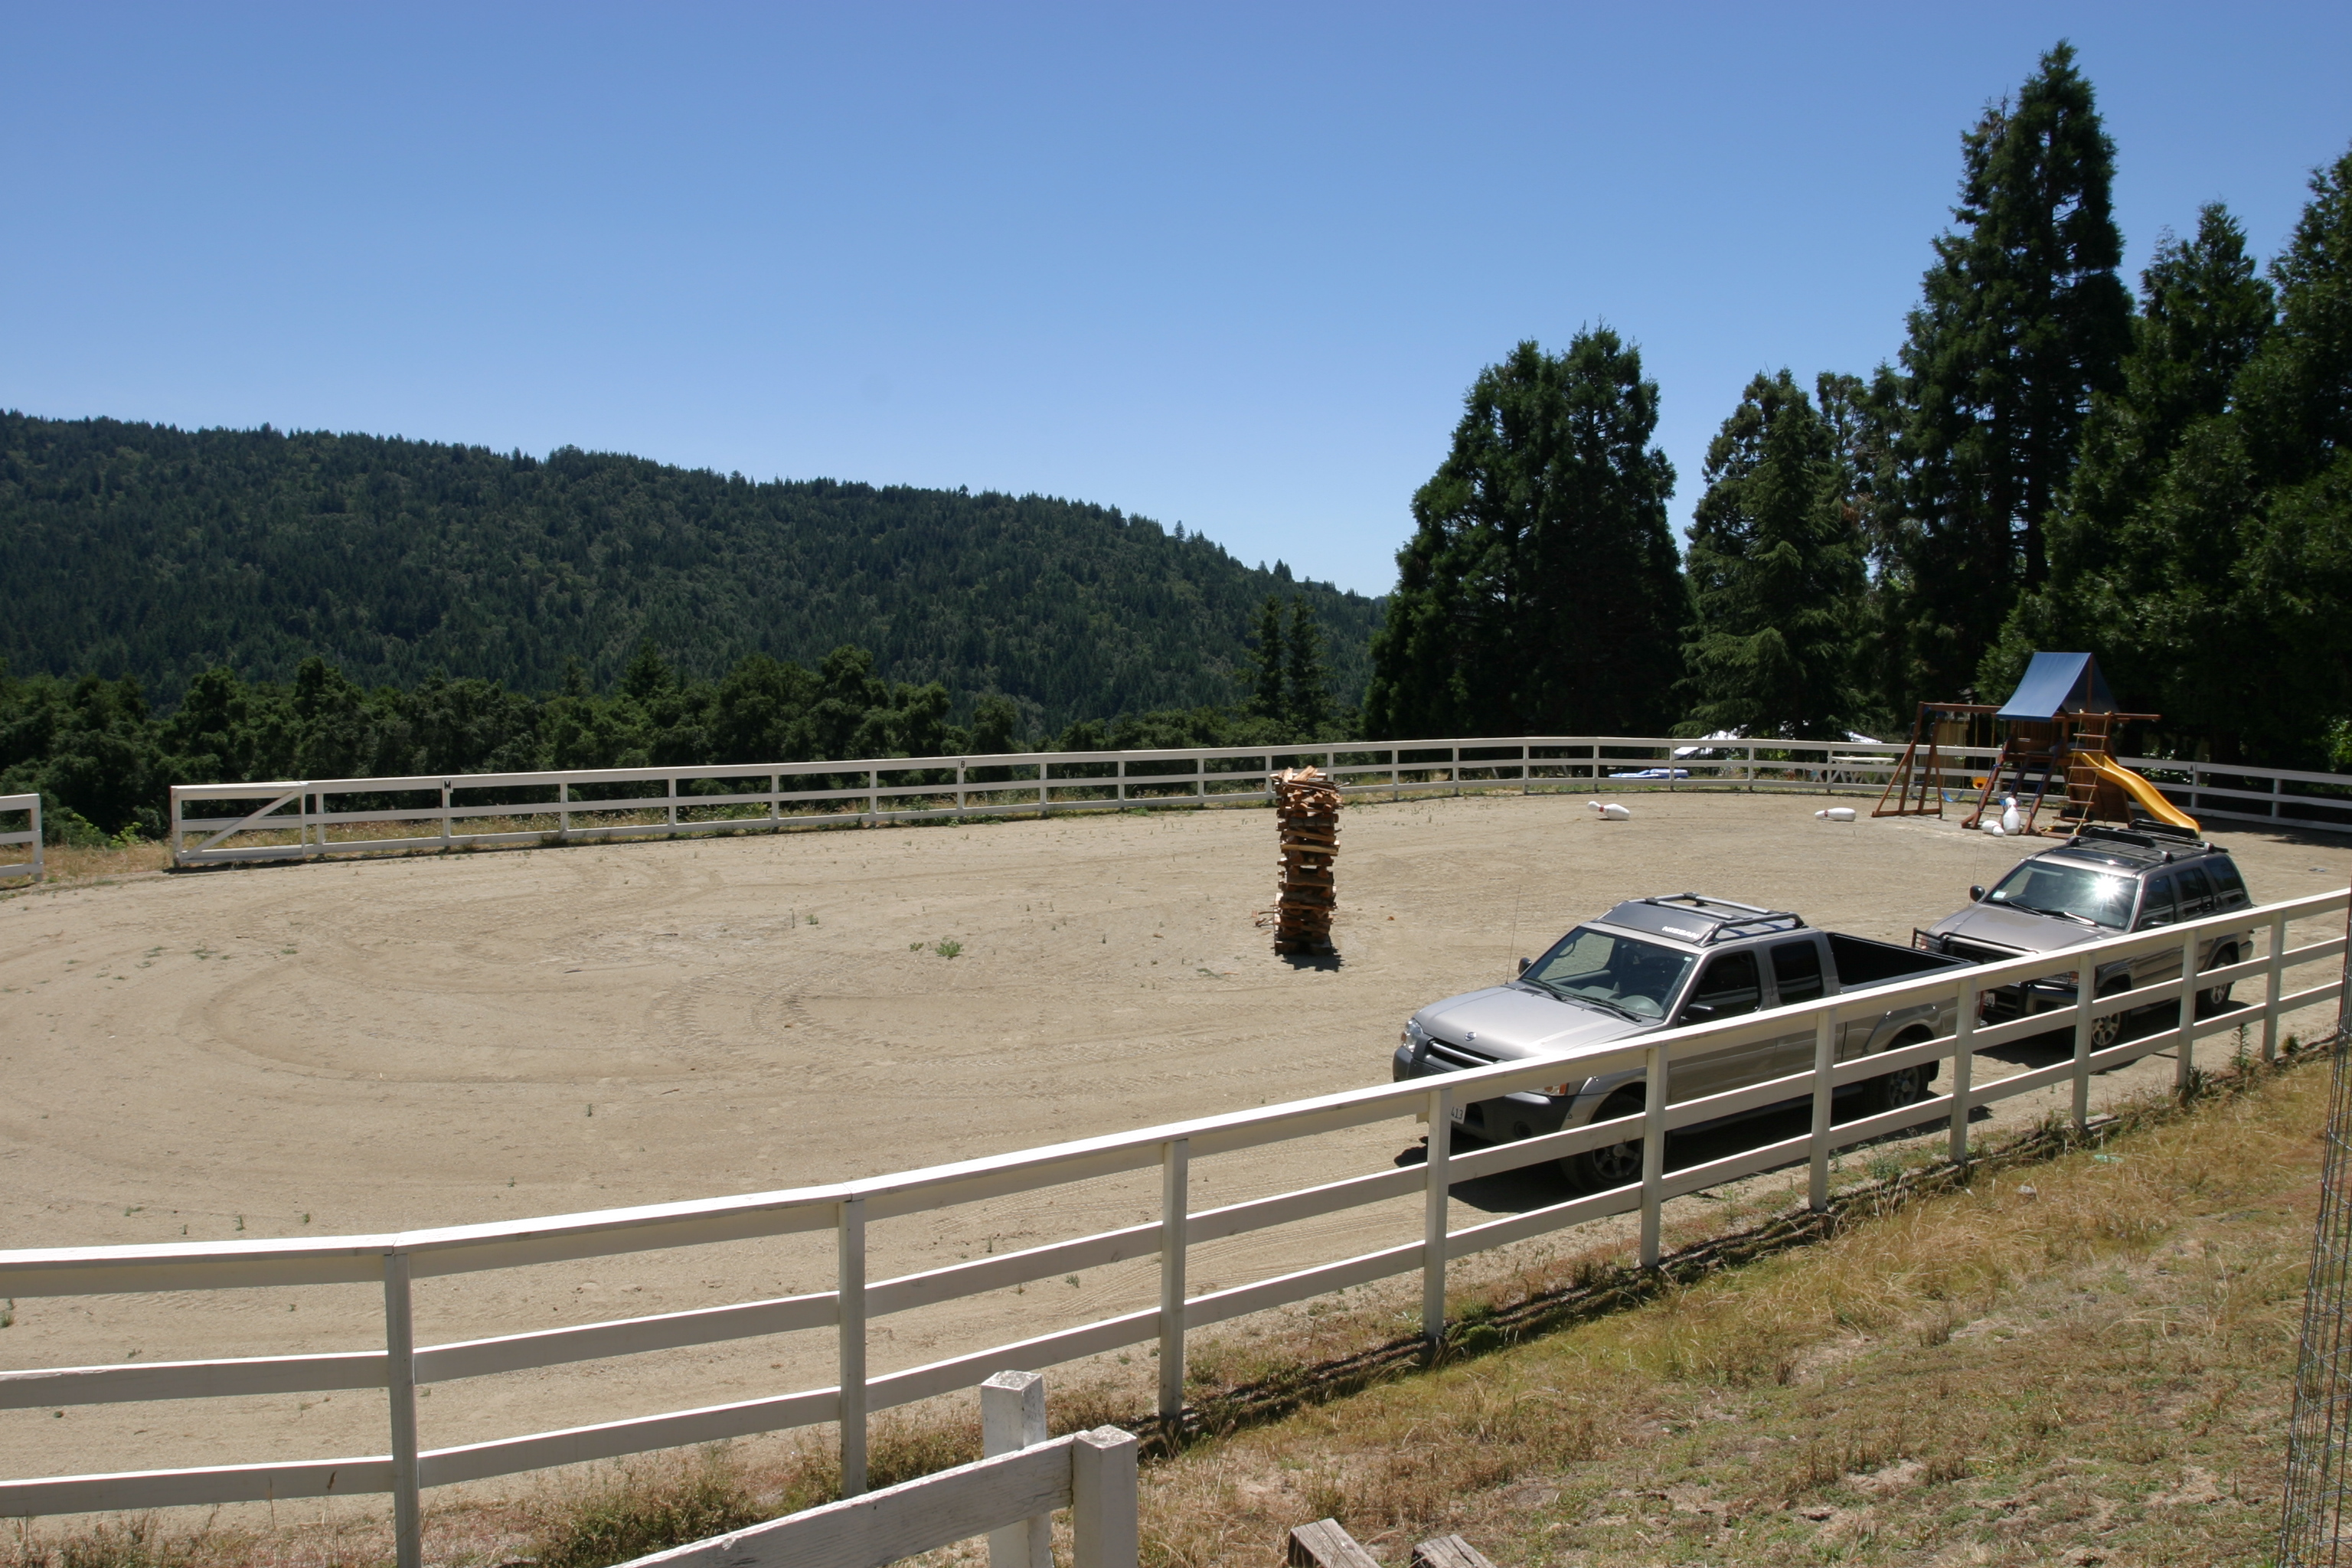 Horse arena and parked cars